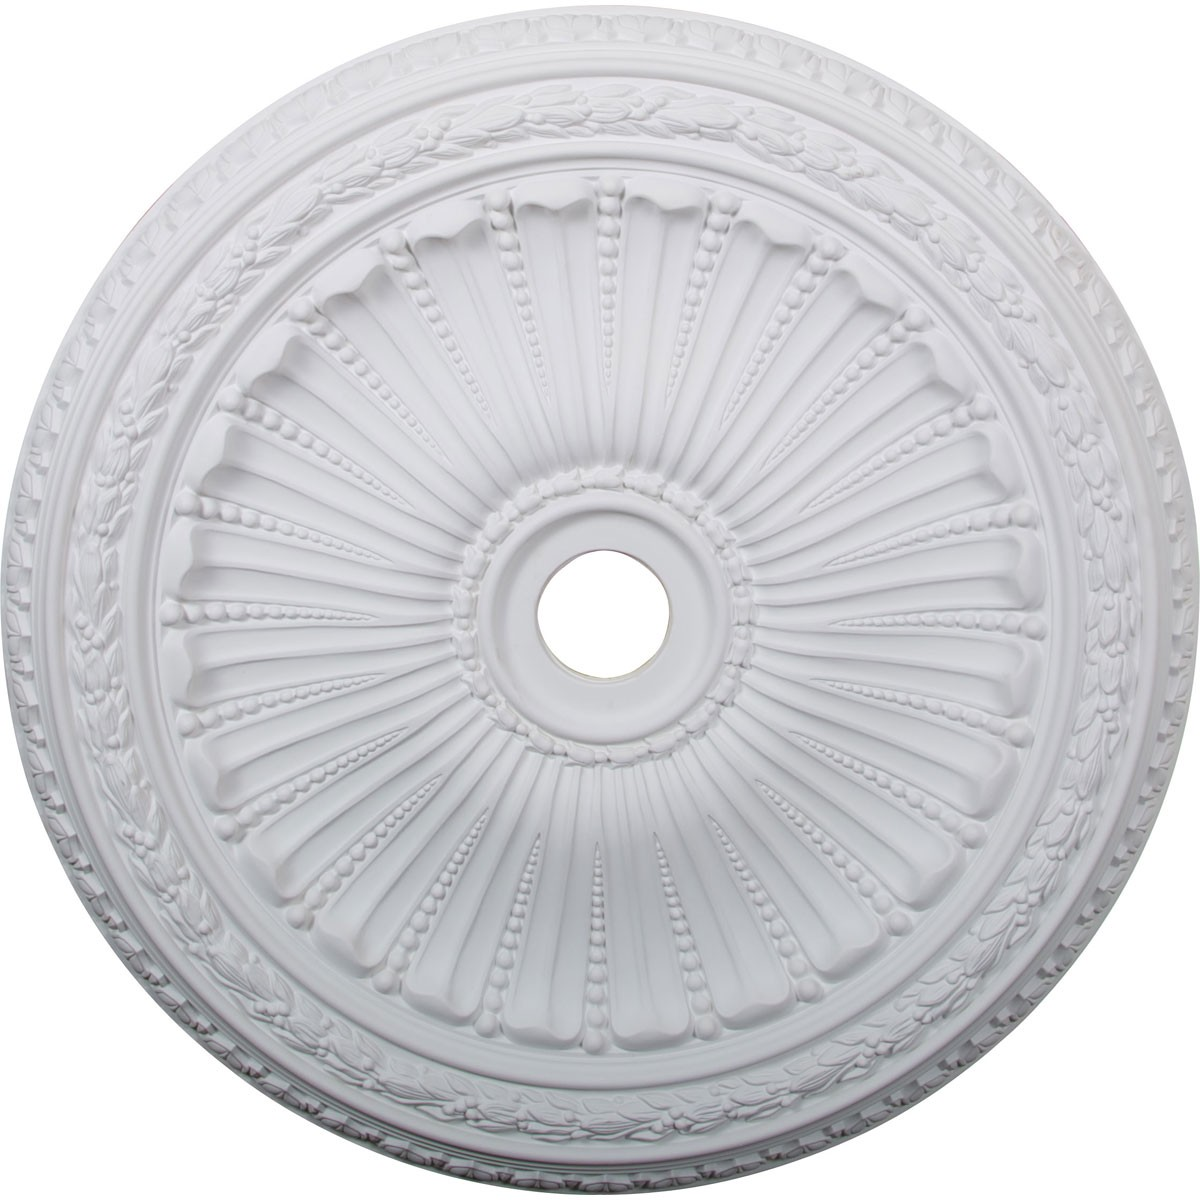 """EM-CM35VI - 35 1/8""""OD x 4 7/8""""ID x 2 1/2""""P Viceroy Ceiling Medallion (Fits Canopies up to 4 7/8"""")"""